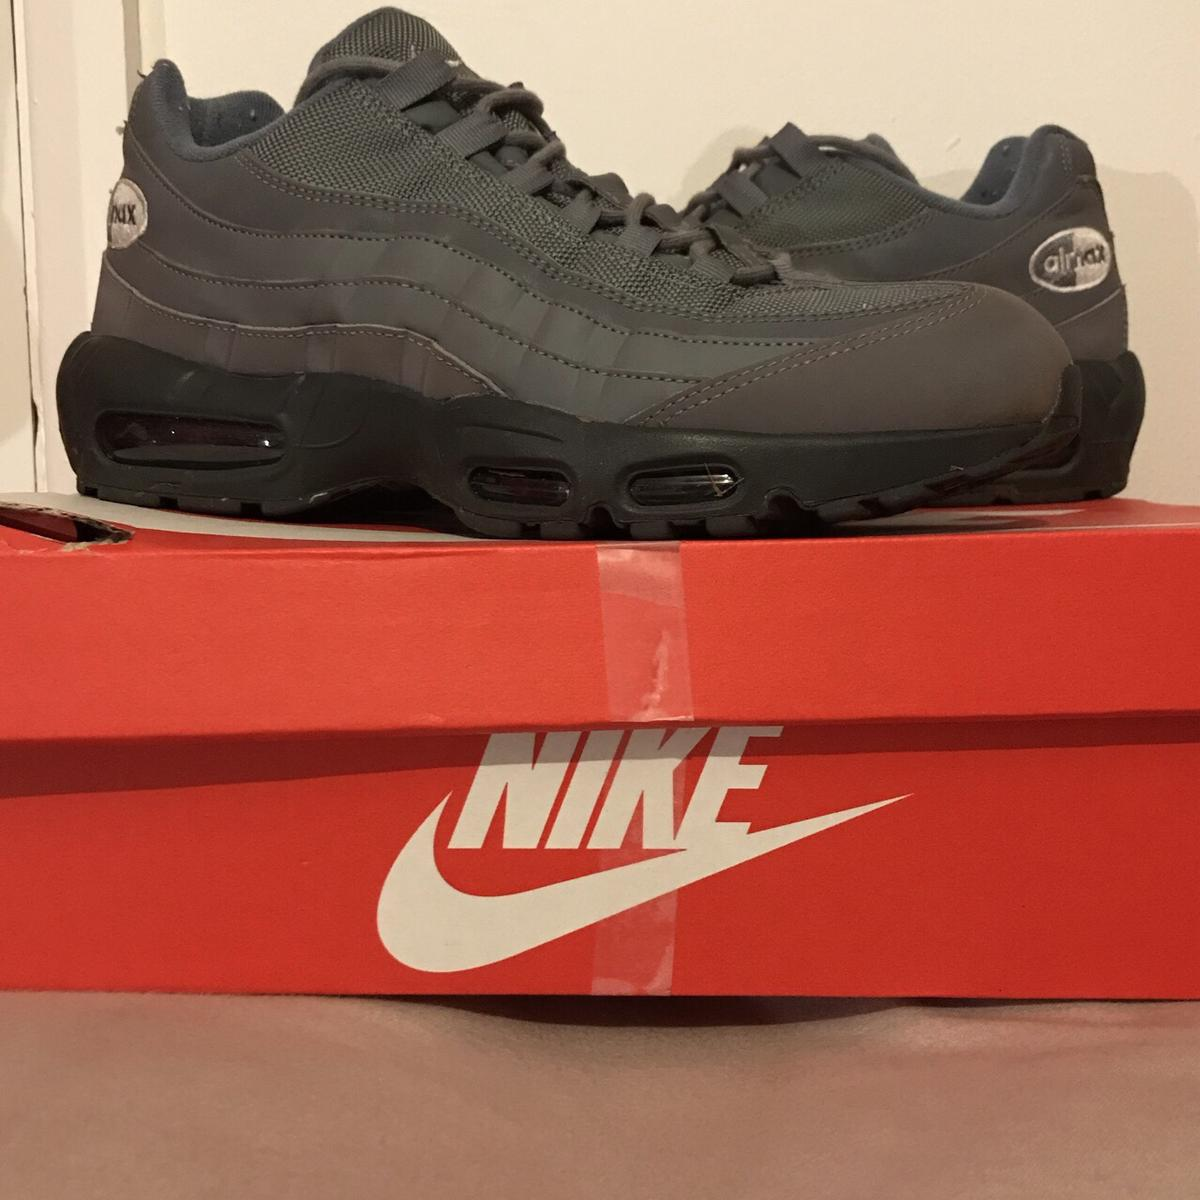 Nike Air Max 95 essential wolf grey in Mendip for £120.00